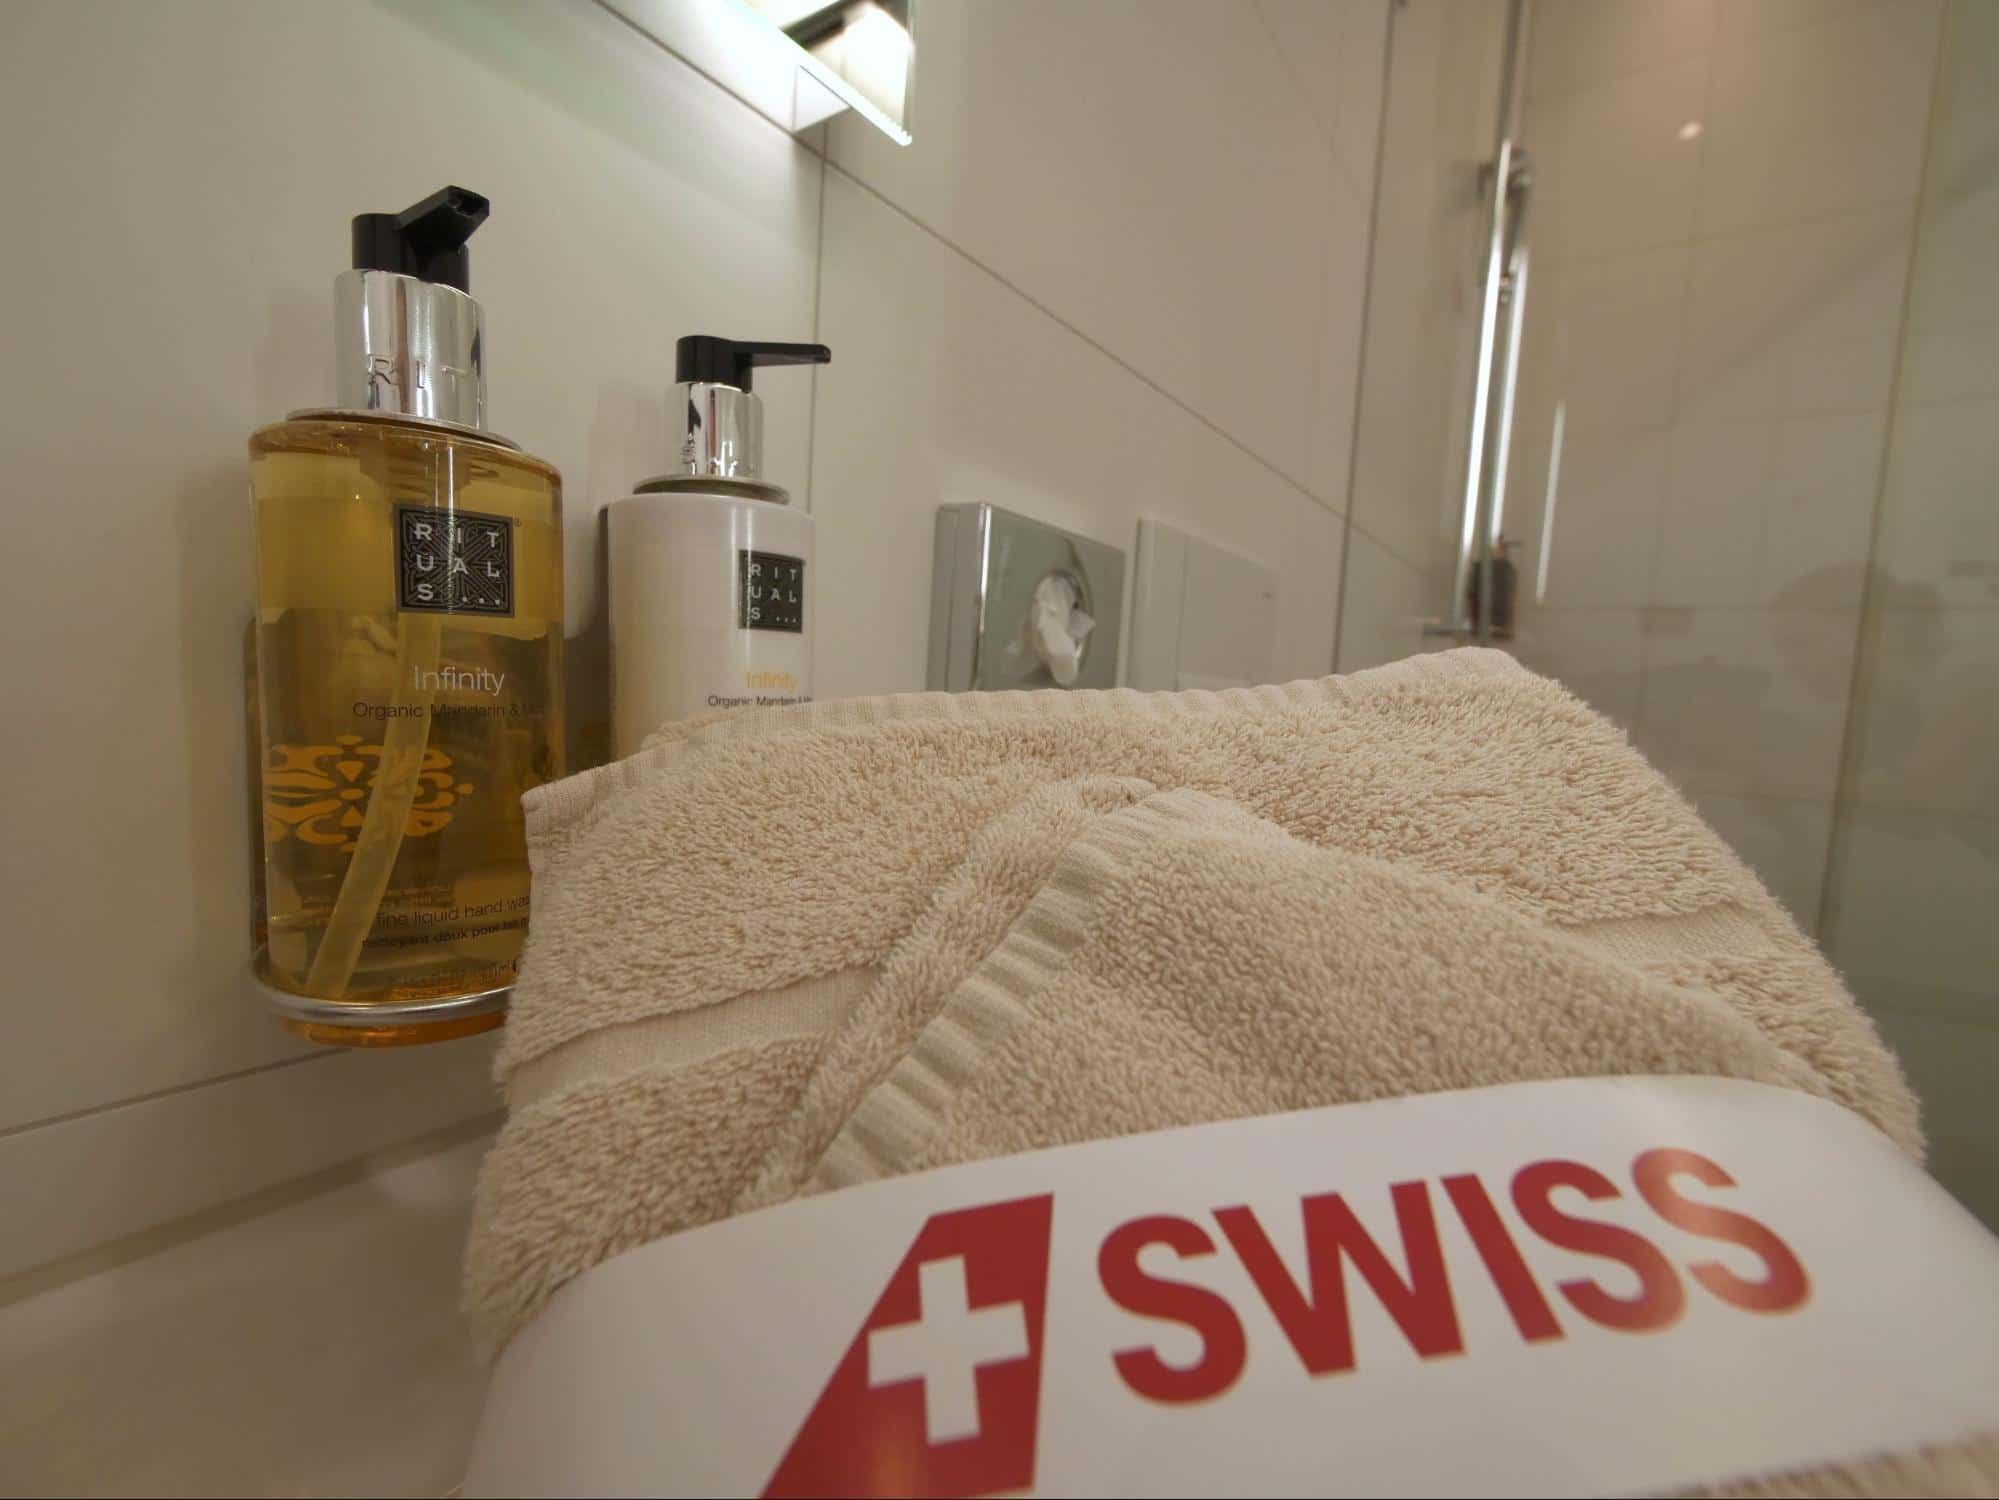 Shower amenities at Swiss arrival lounge in Zurich